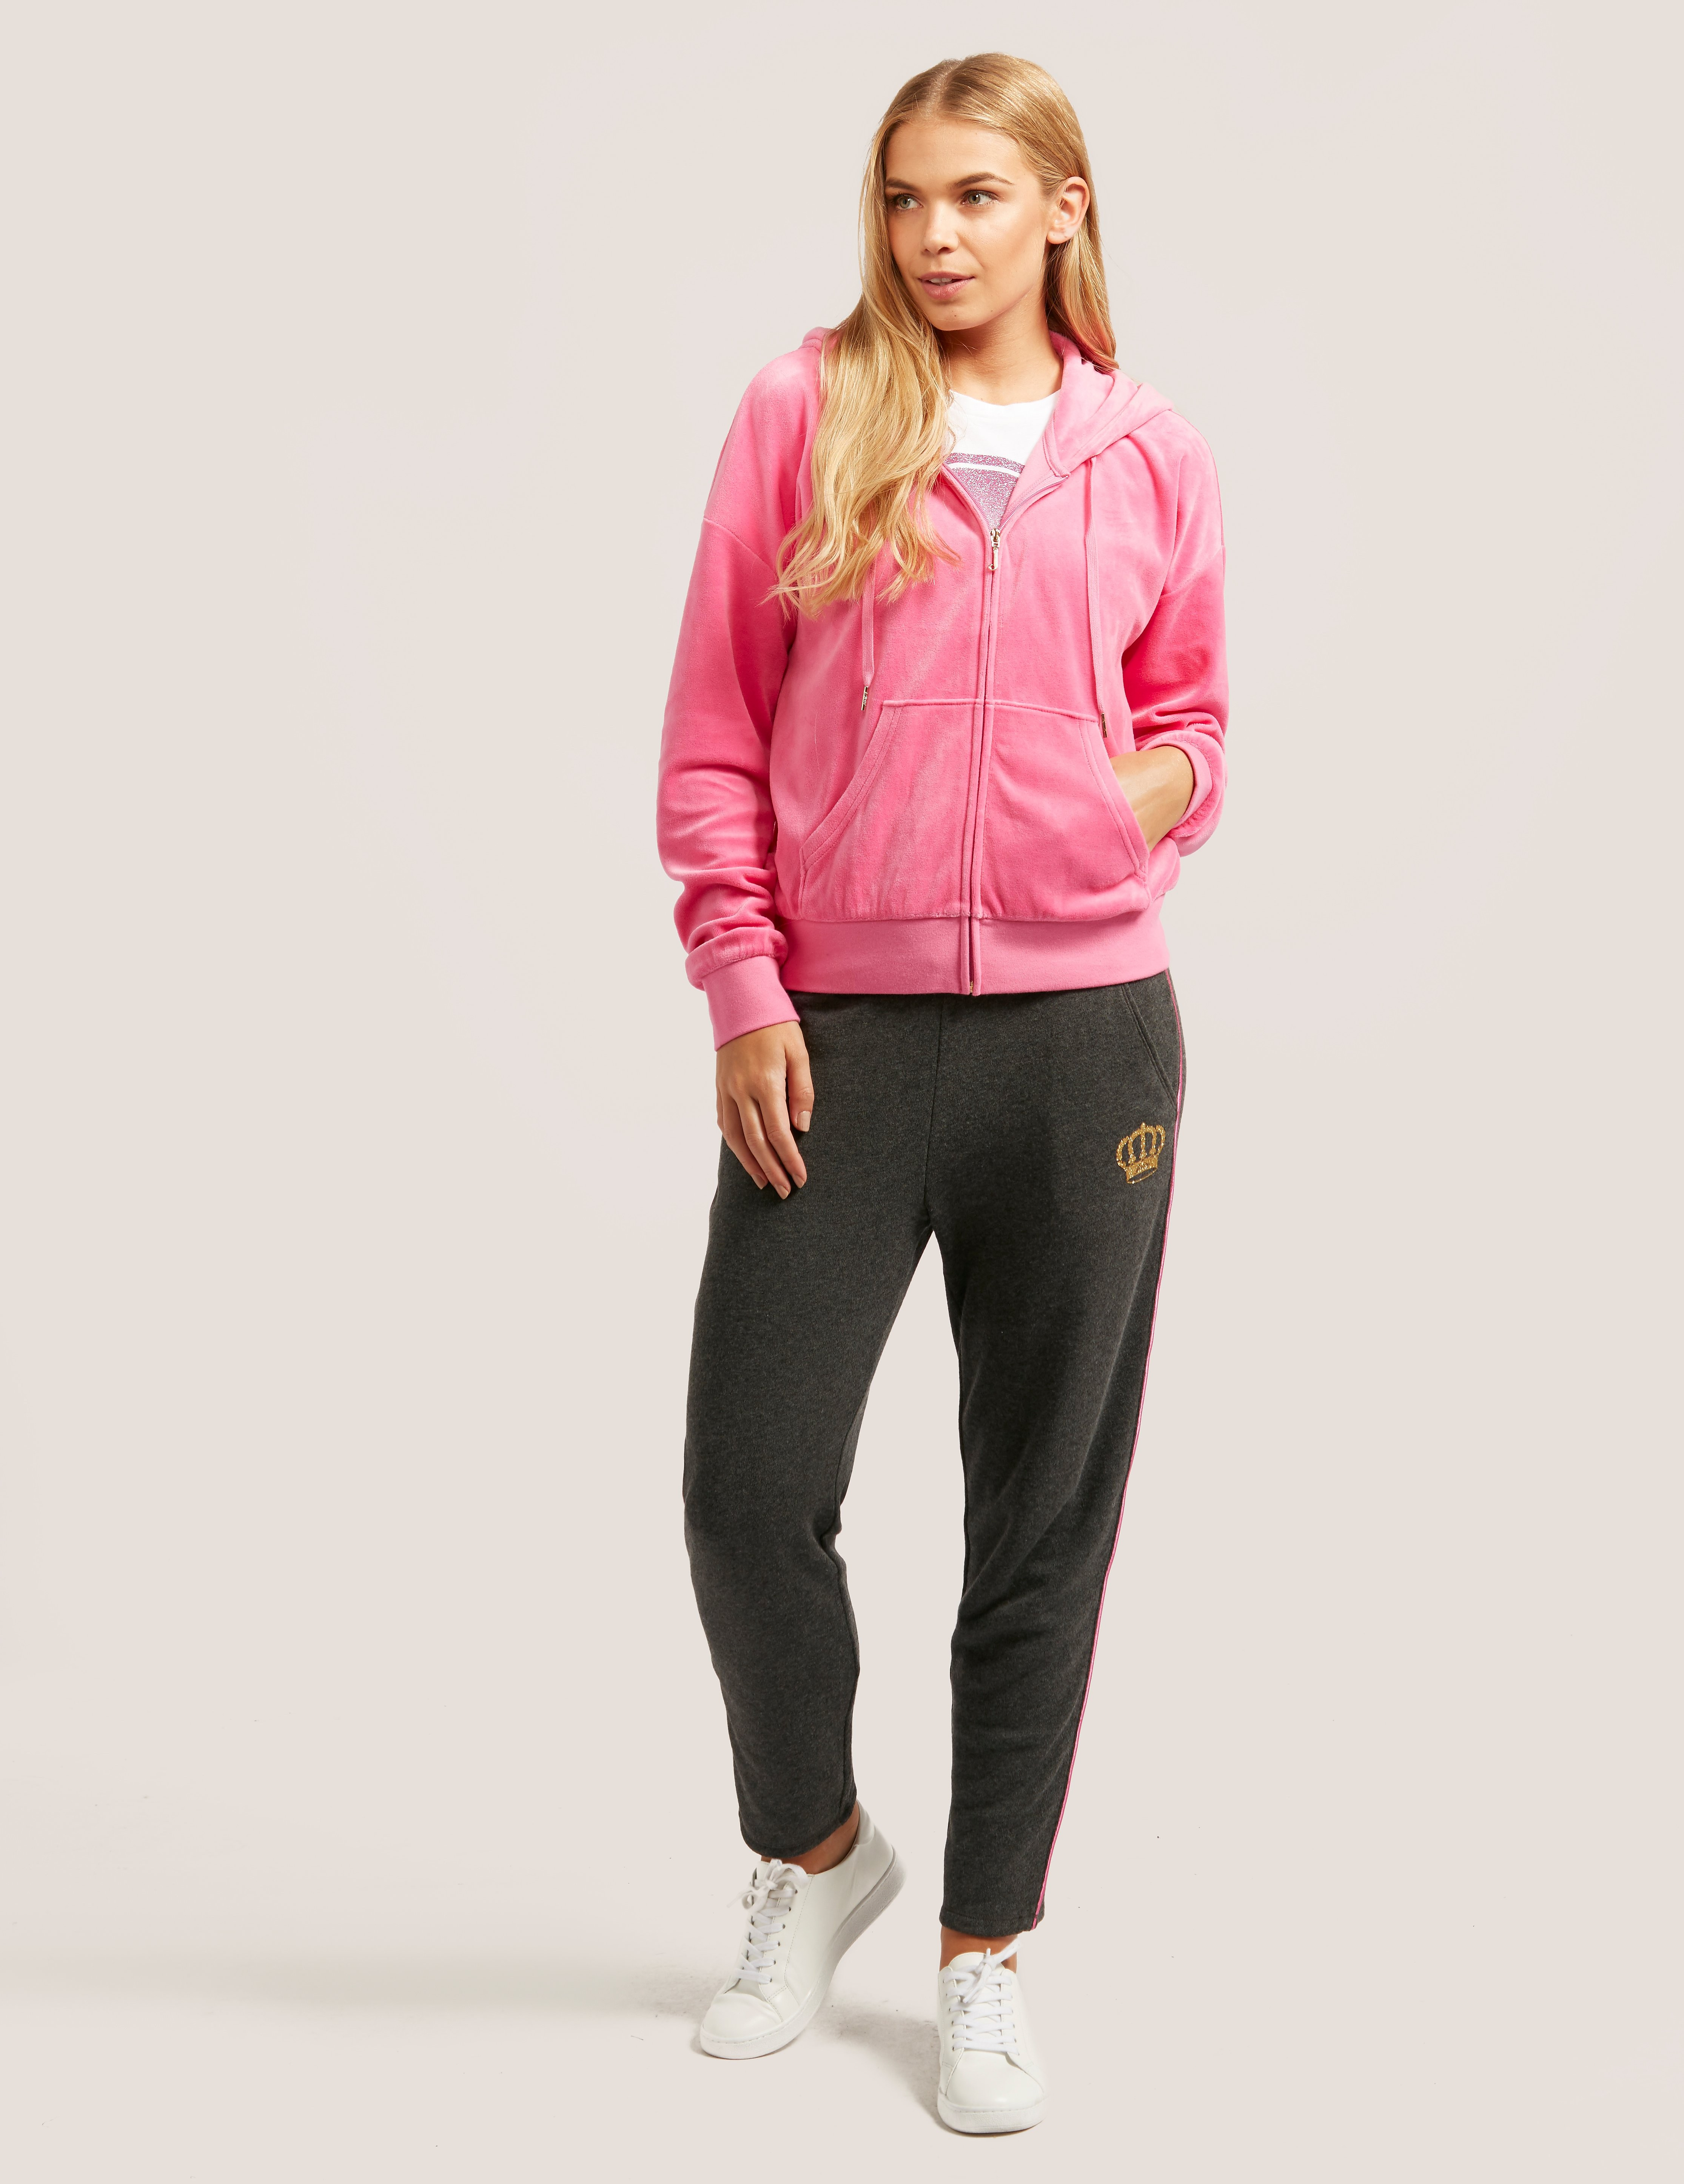 Juicy Couture Crown Sunset Jacket